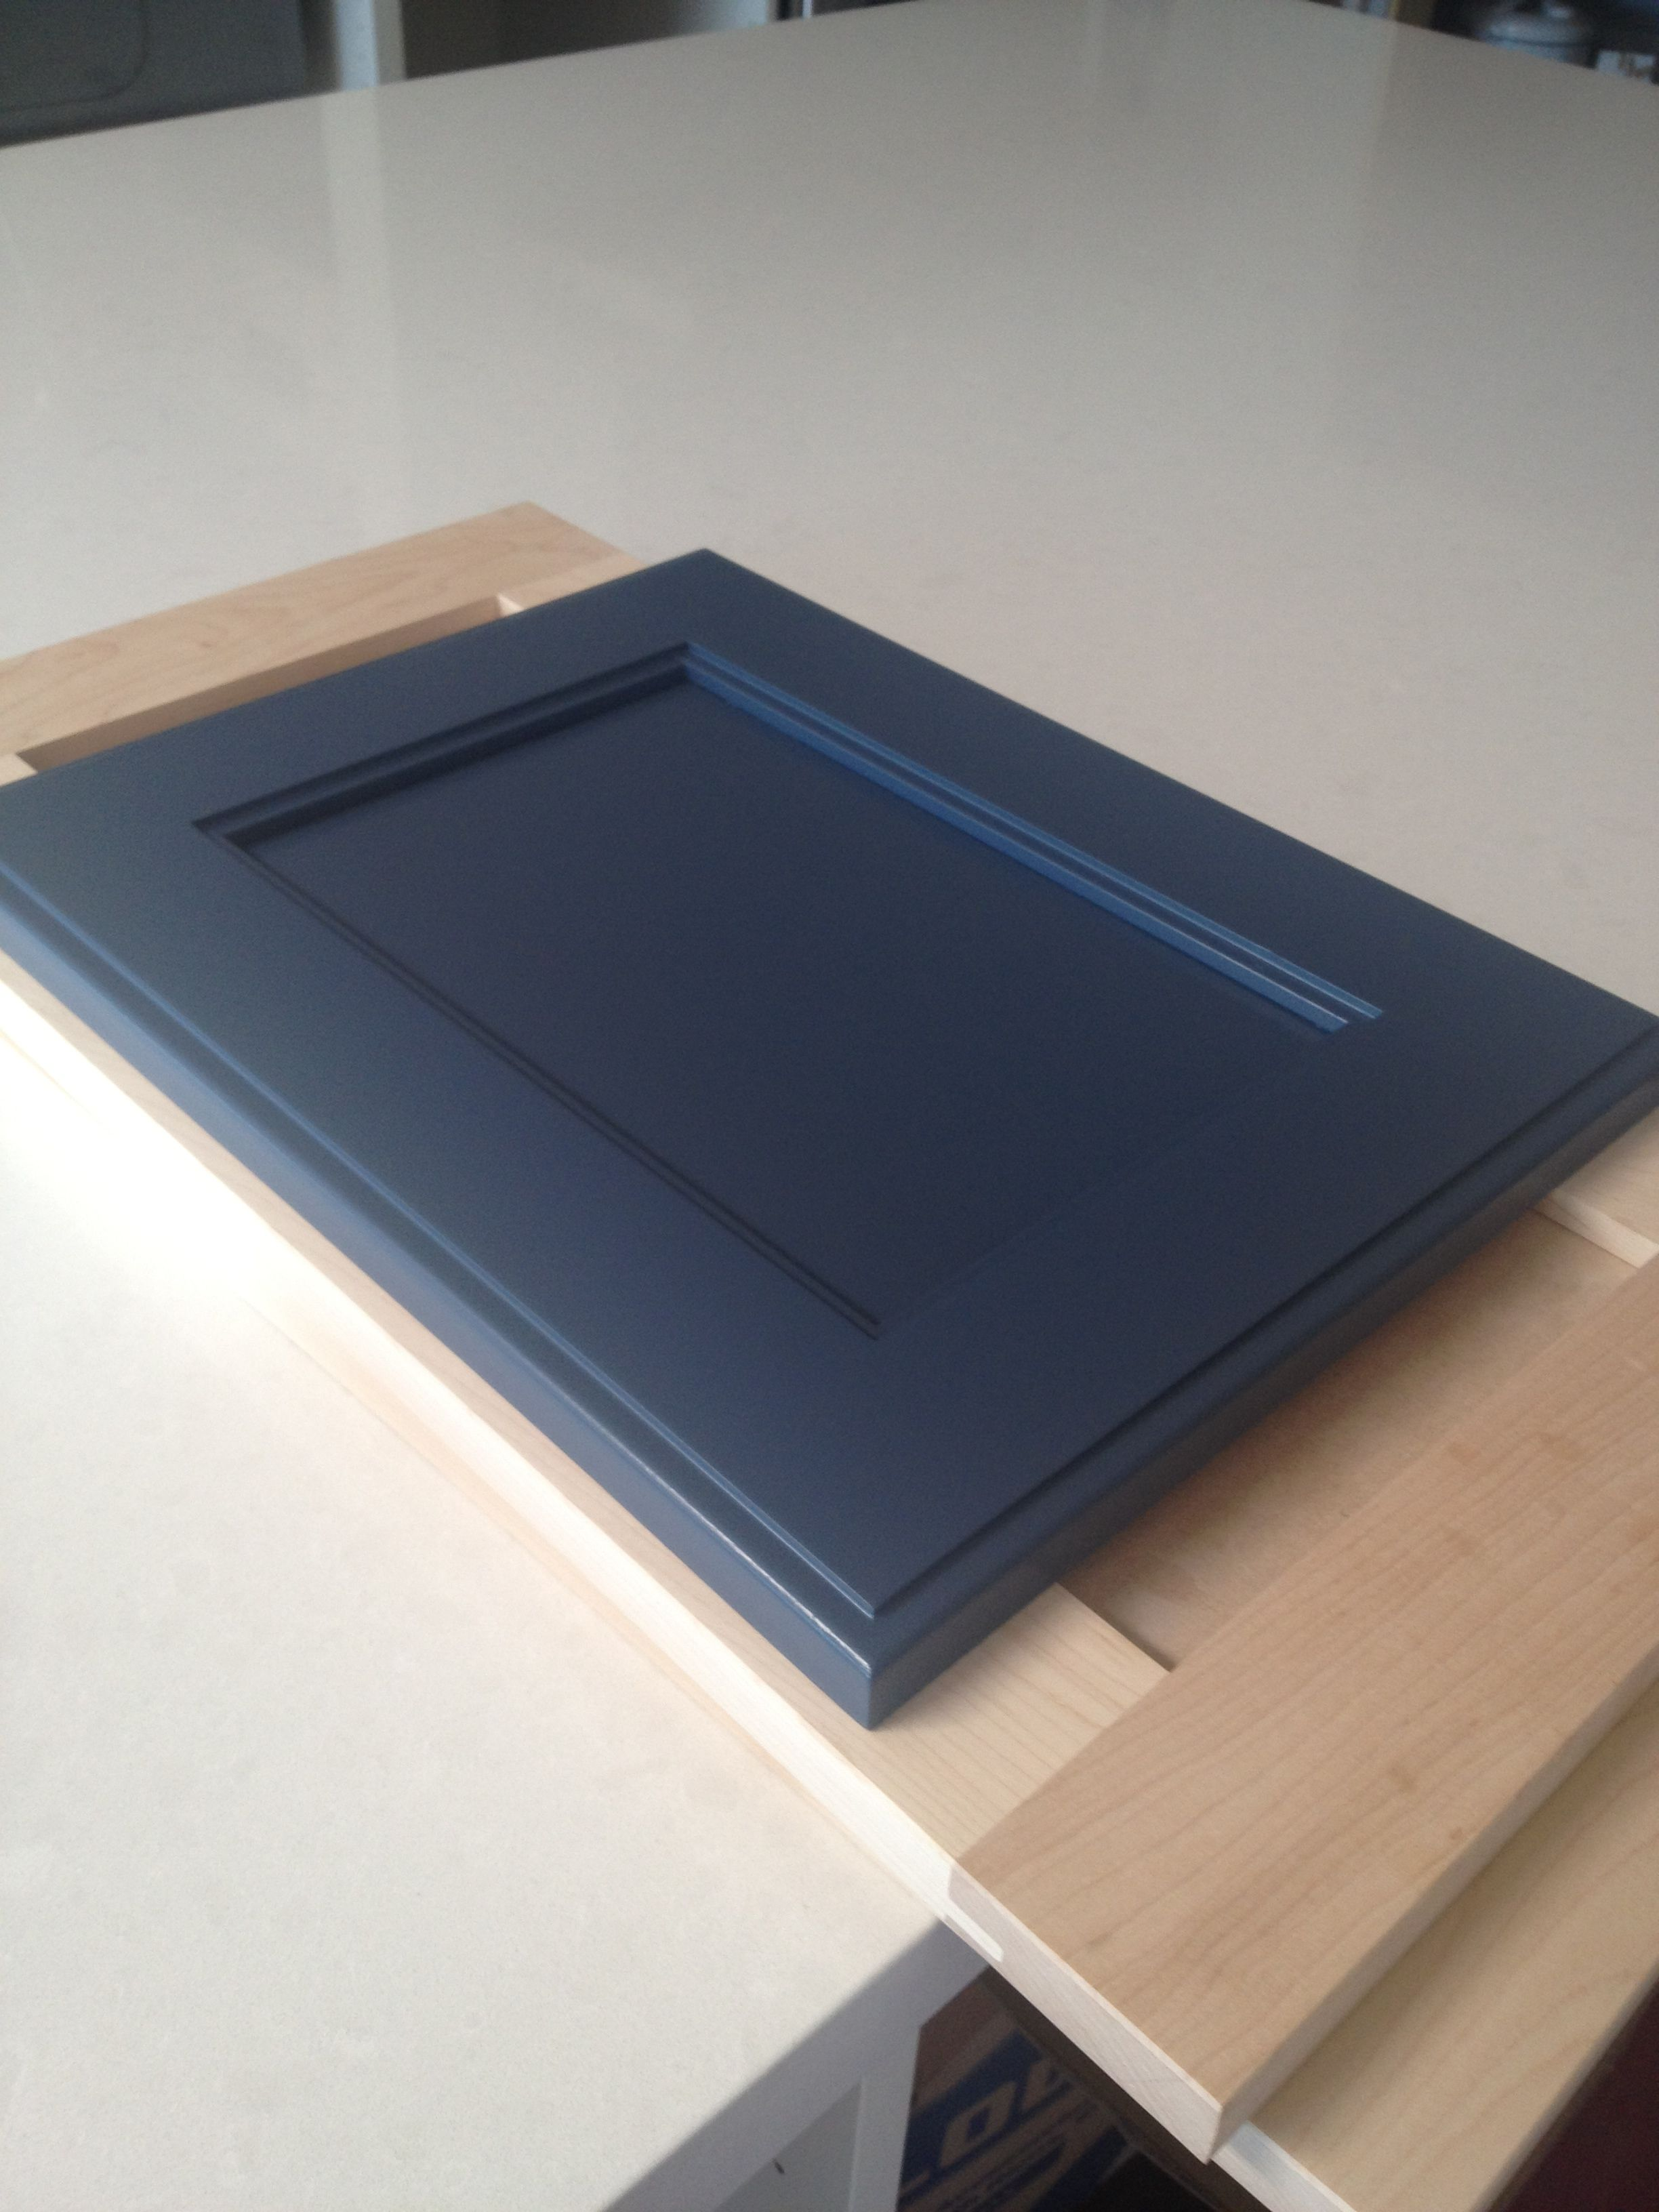 Semihandmade Cabinet Doors For Ikea Cabinets Lacquered In Navy Blue